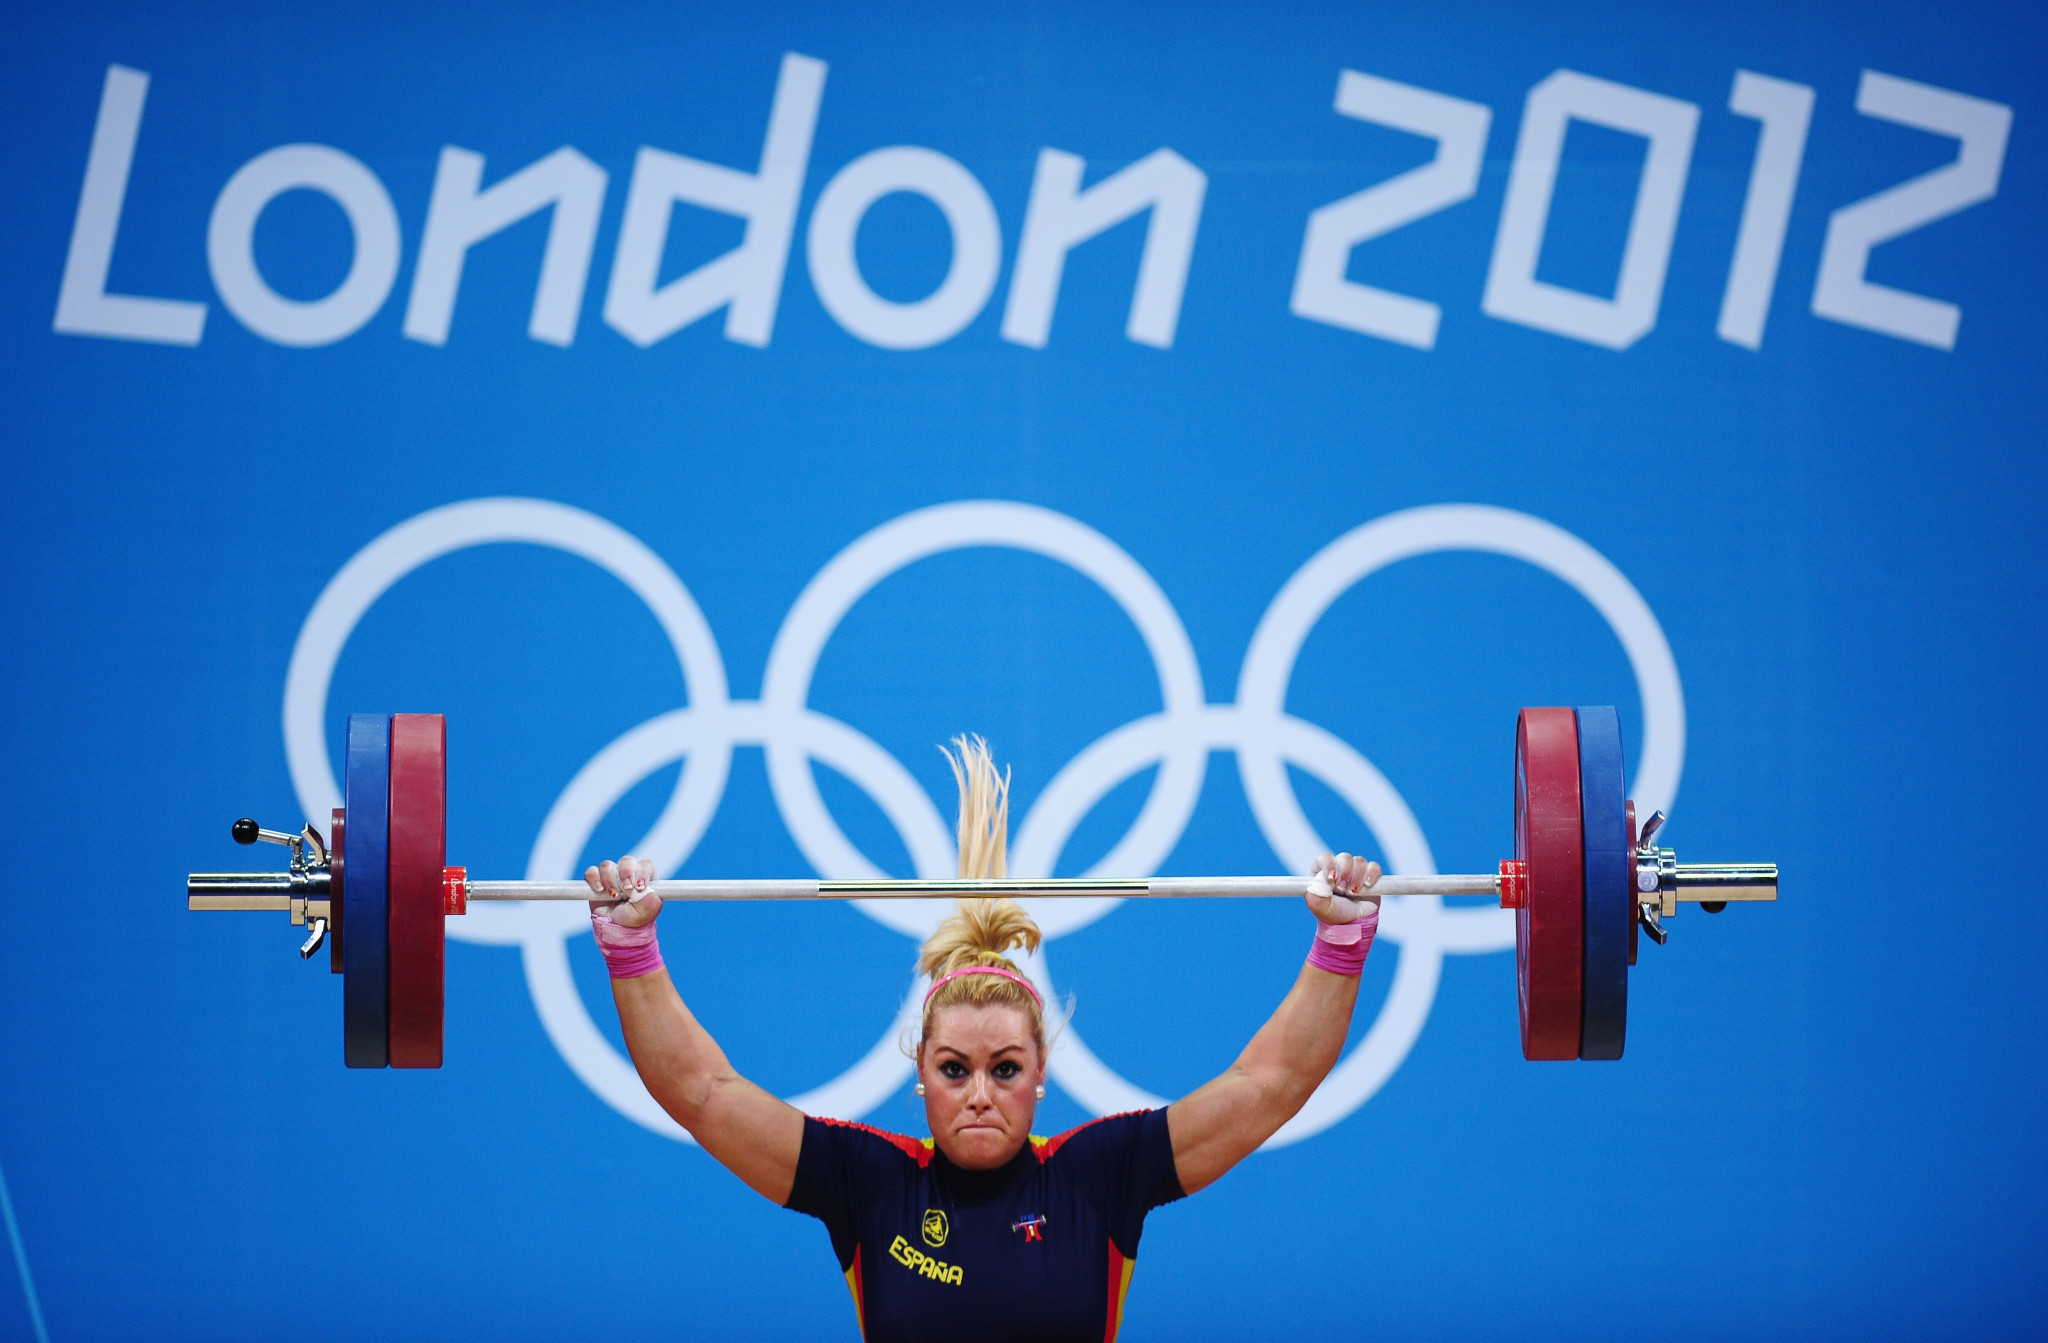 Spain's Lidia Valentín was upgraded to London 2012 Olympic gold ©Getty Images